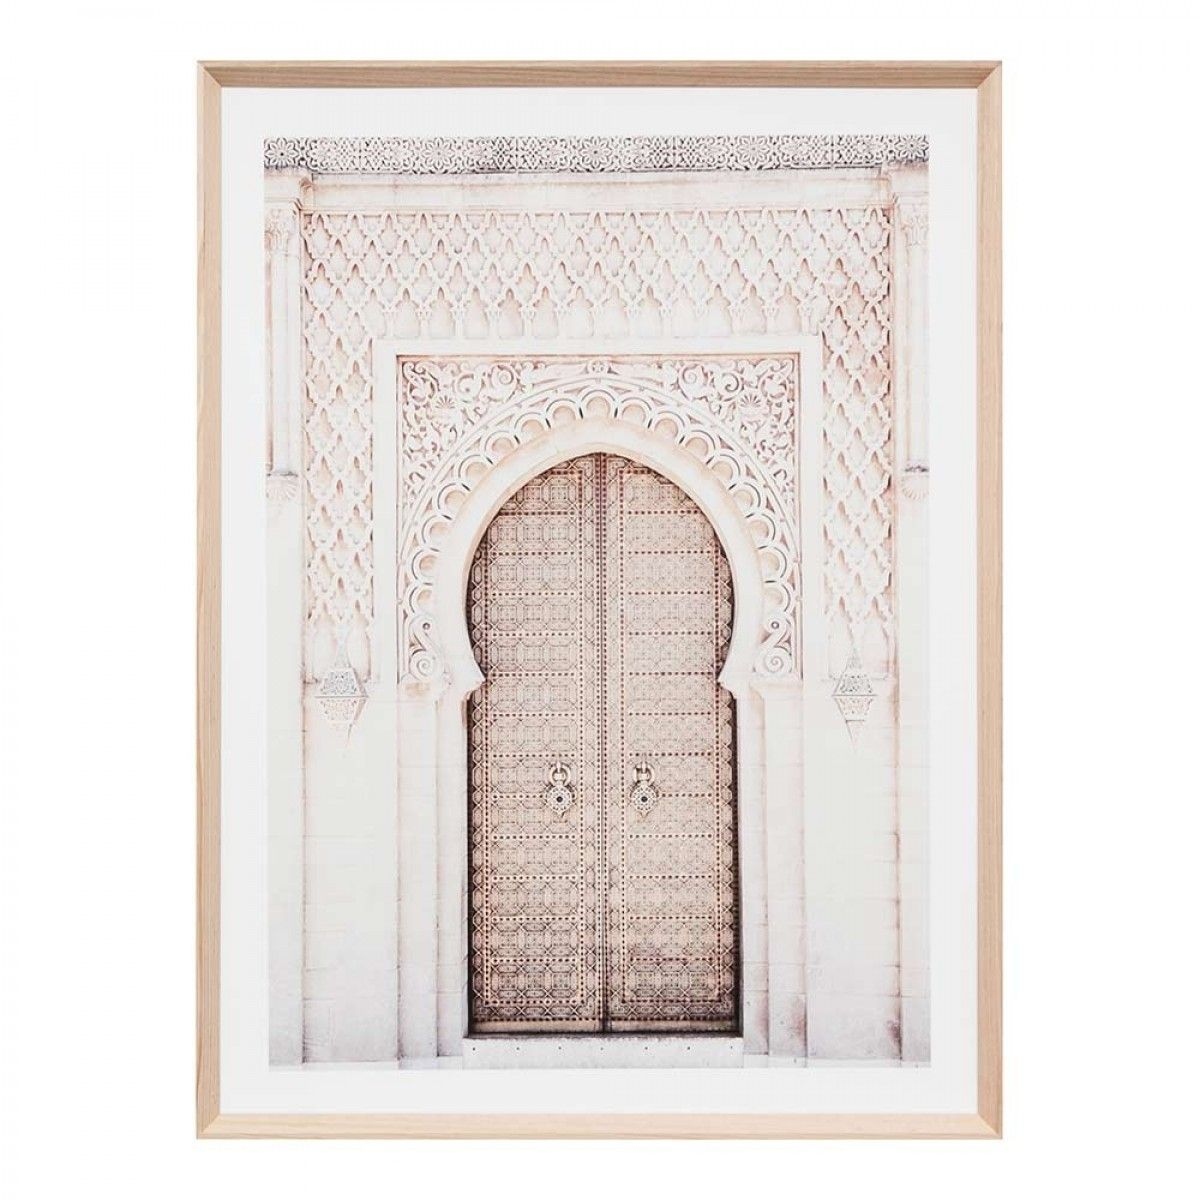 Moroccan door xcm prints u wall hangings homewares